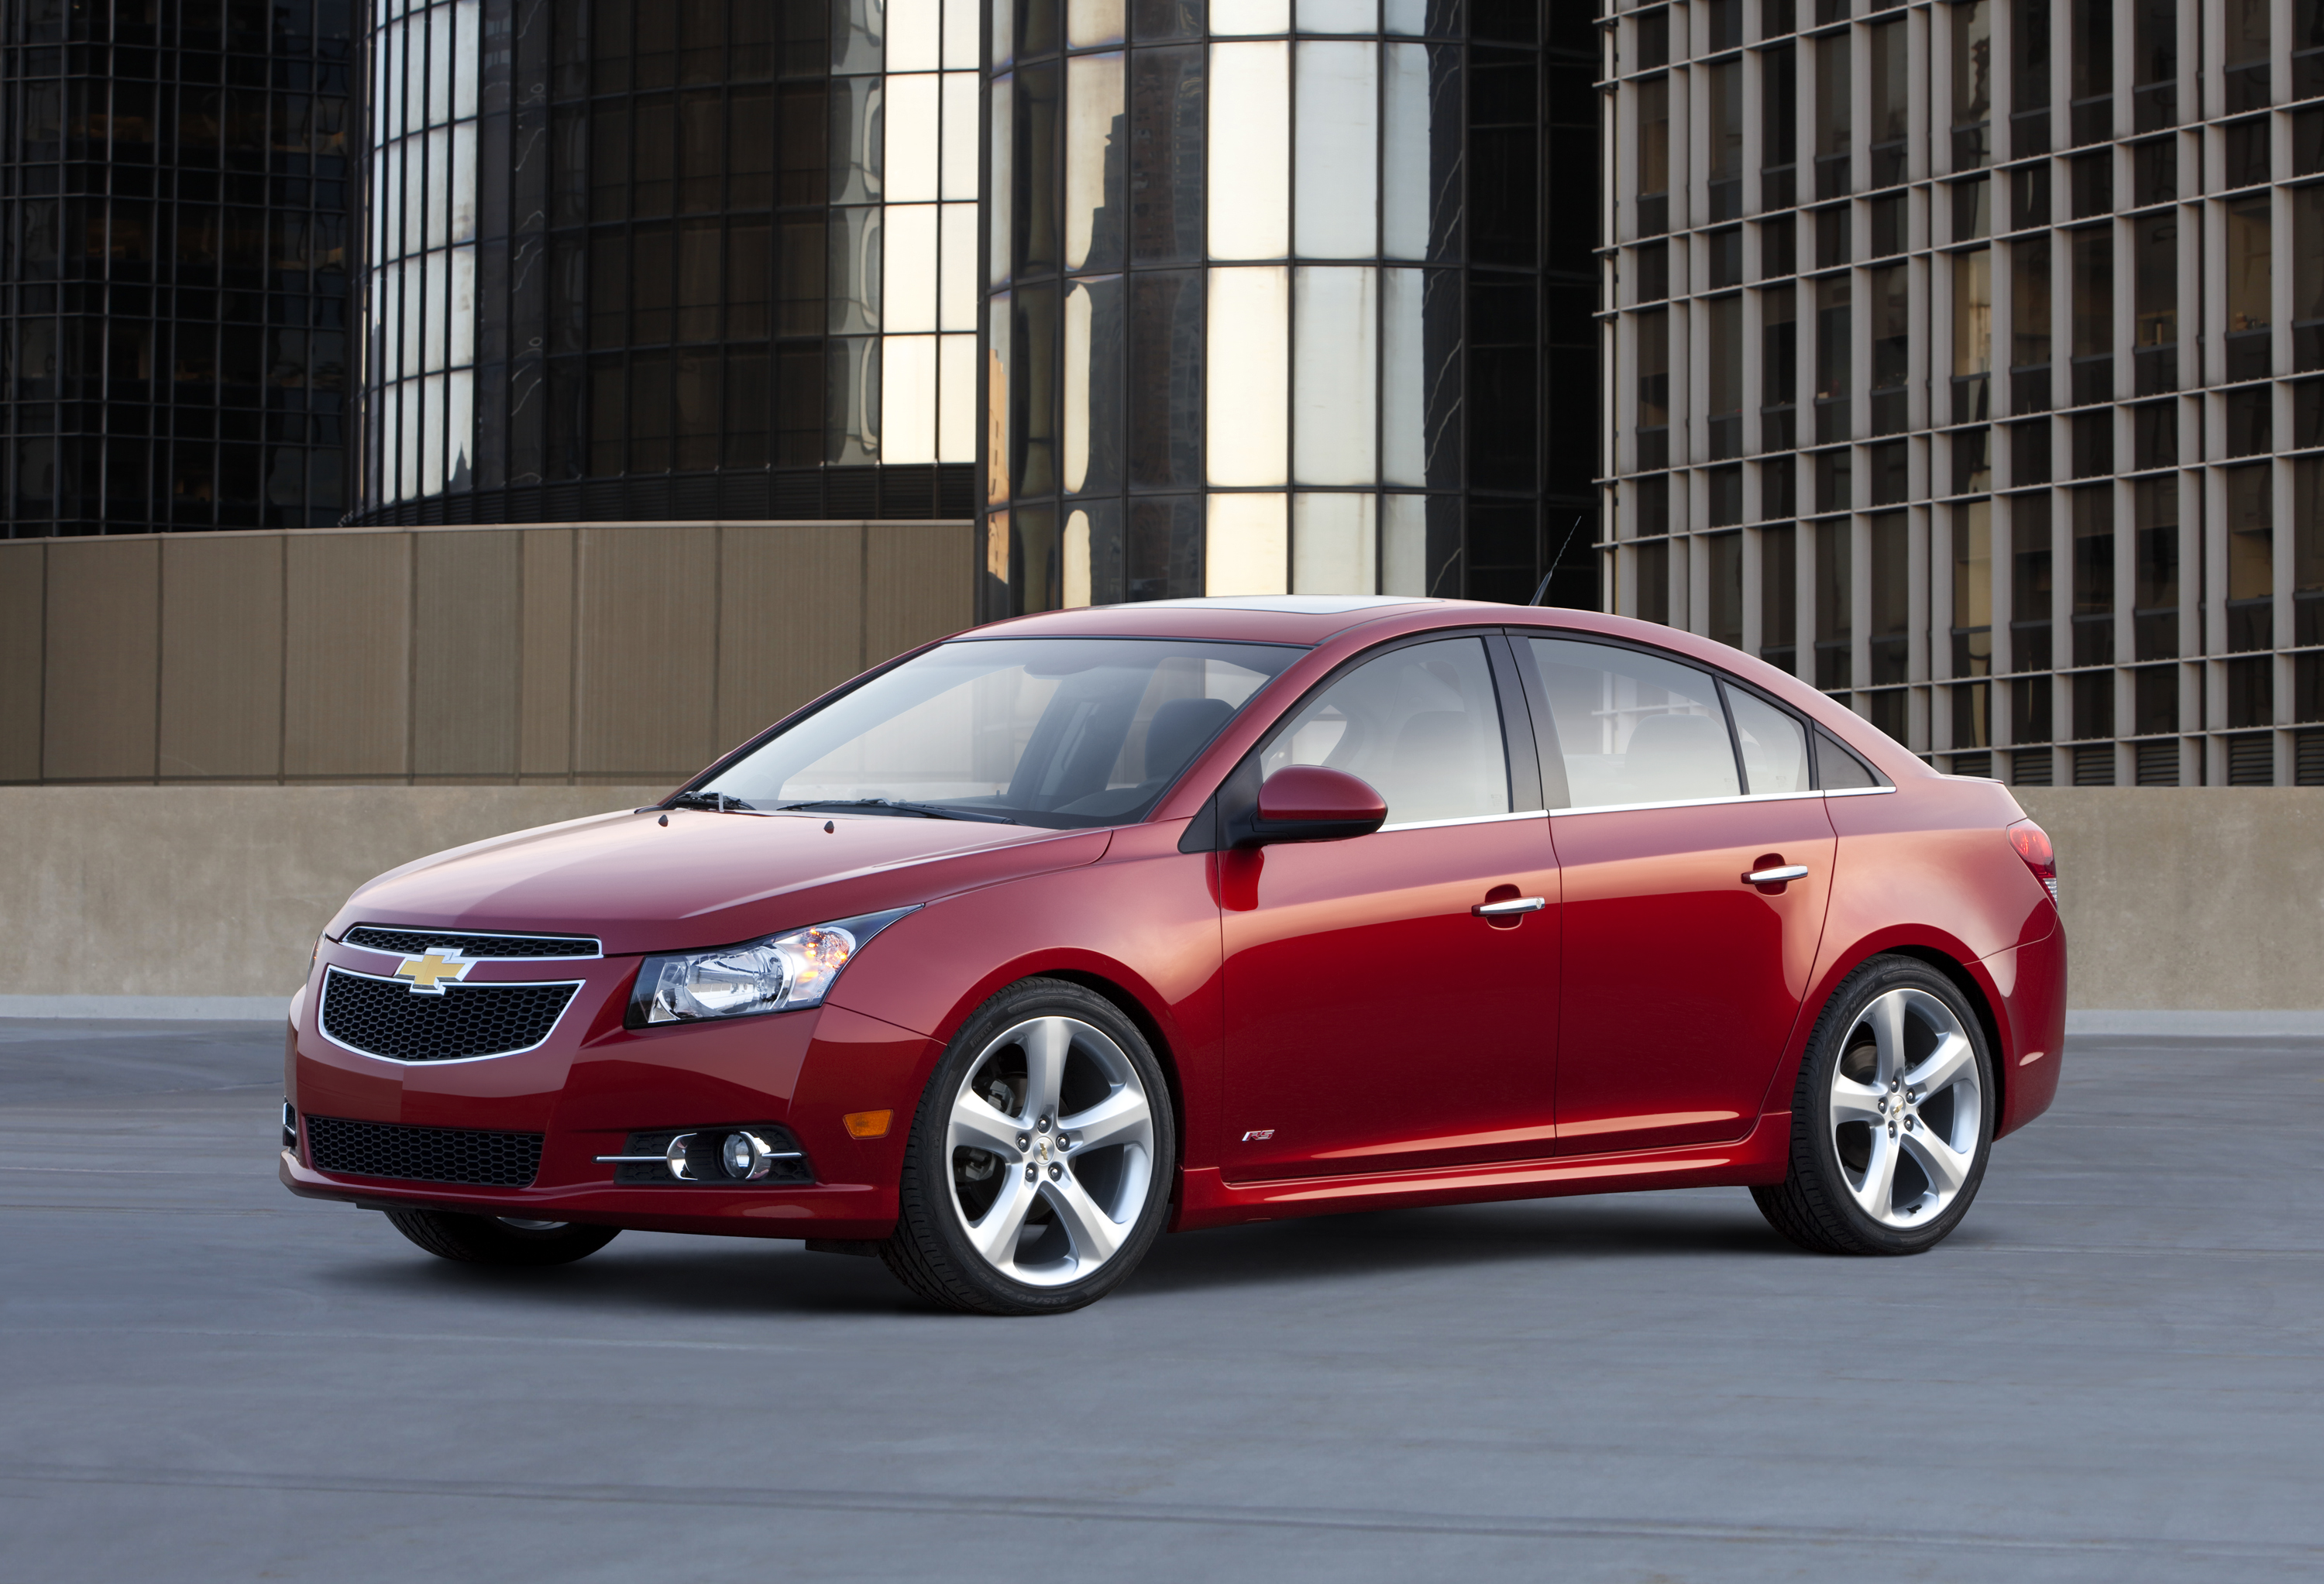 Chevrolet Cruze Repair Manual: Radiator Grille Reinforcement Support Replacement